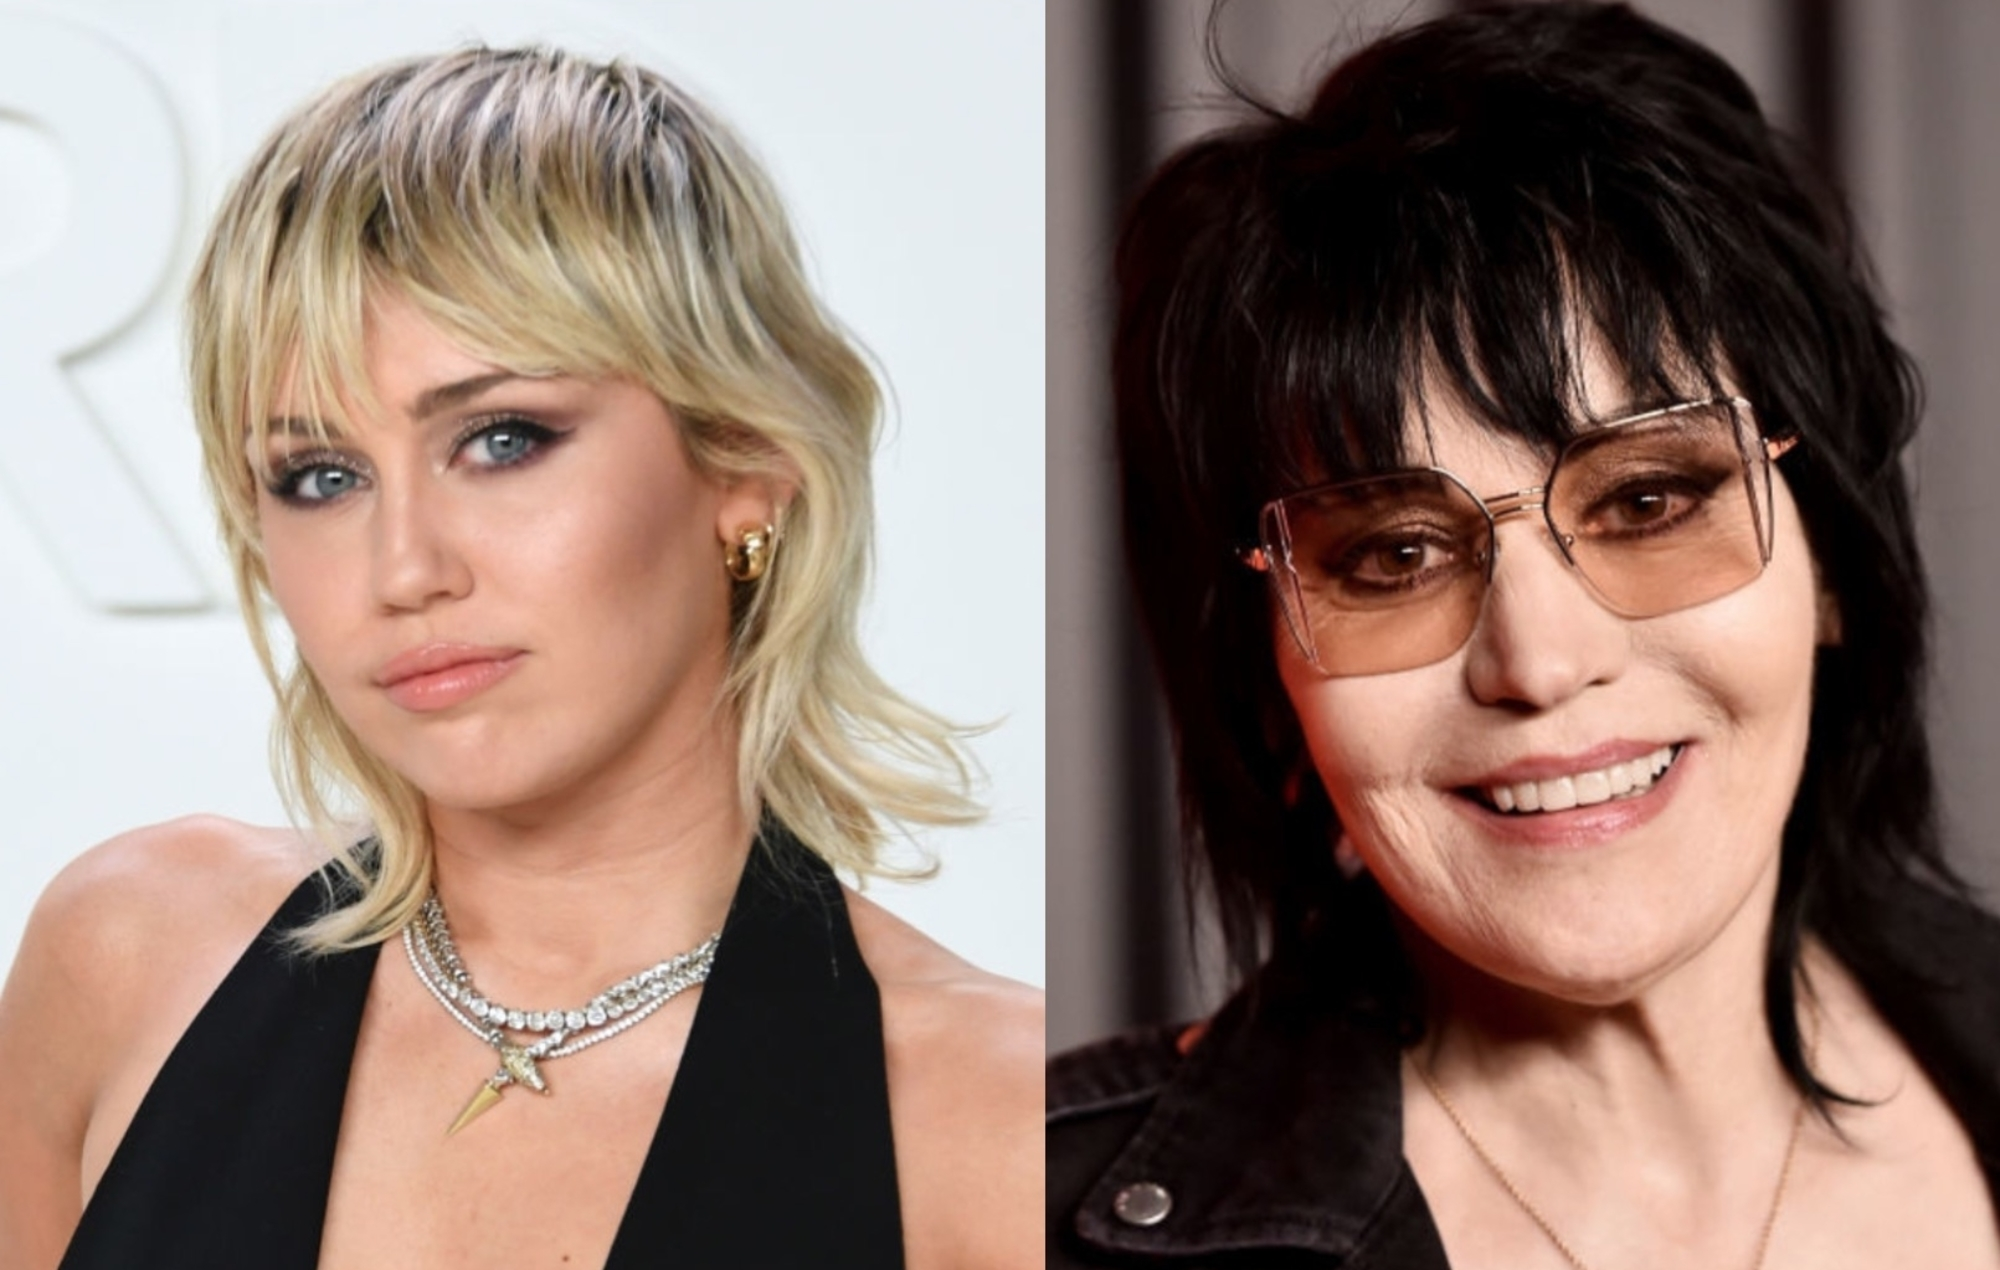 Listen to Miley Cyrus and Joan Jett team up on new track 'Bad Karma'